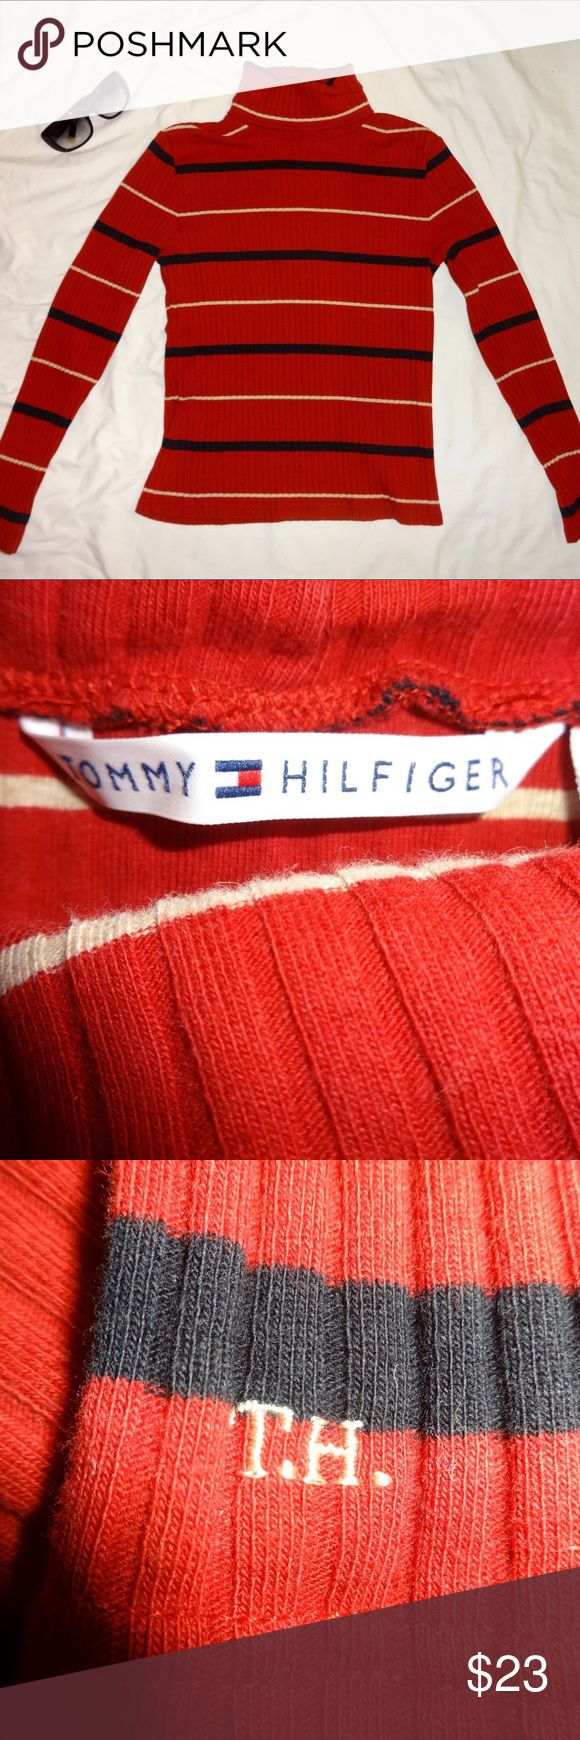 Tommy Hilfiger Turtleneck Sweater Red turtleneck sweater with black and cream stripes. Gently used. No flaws. Tommy Hilfiger Tops